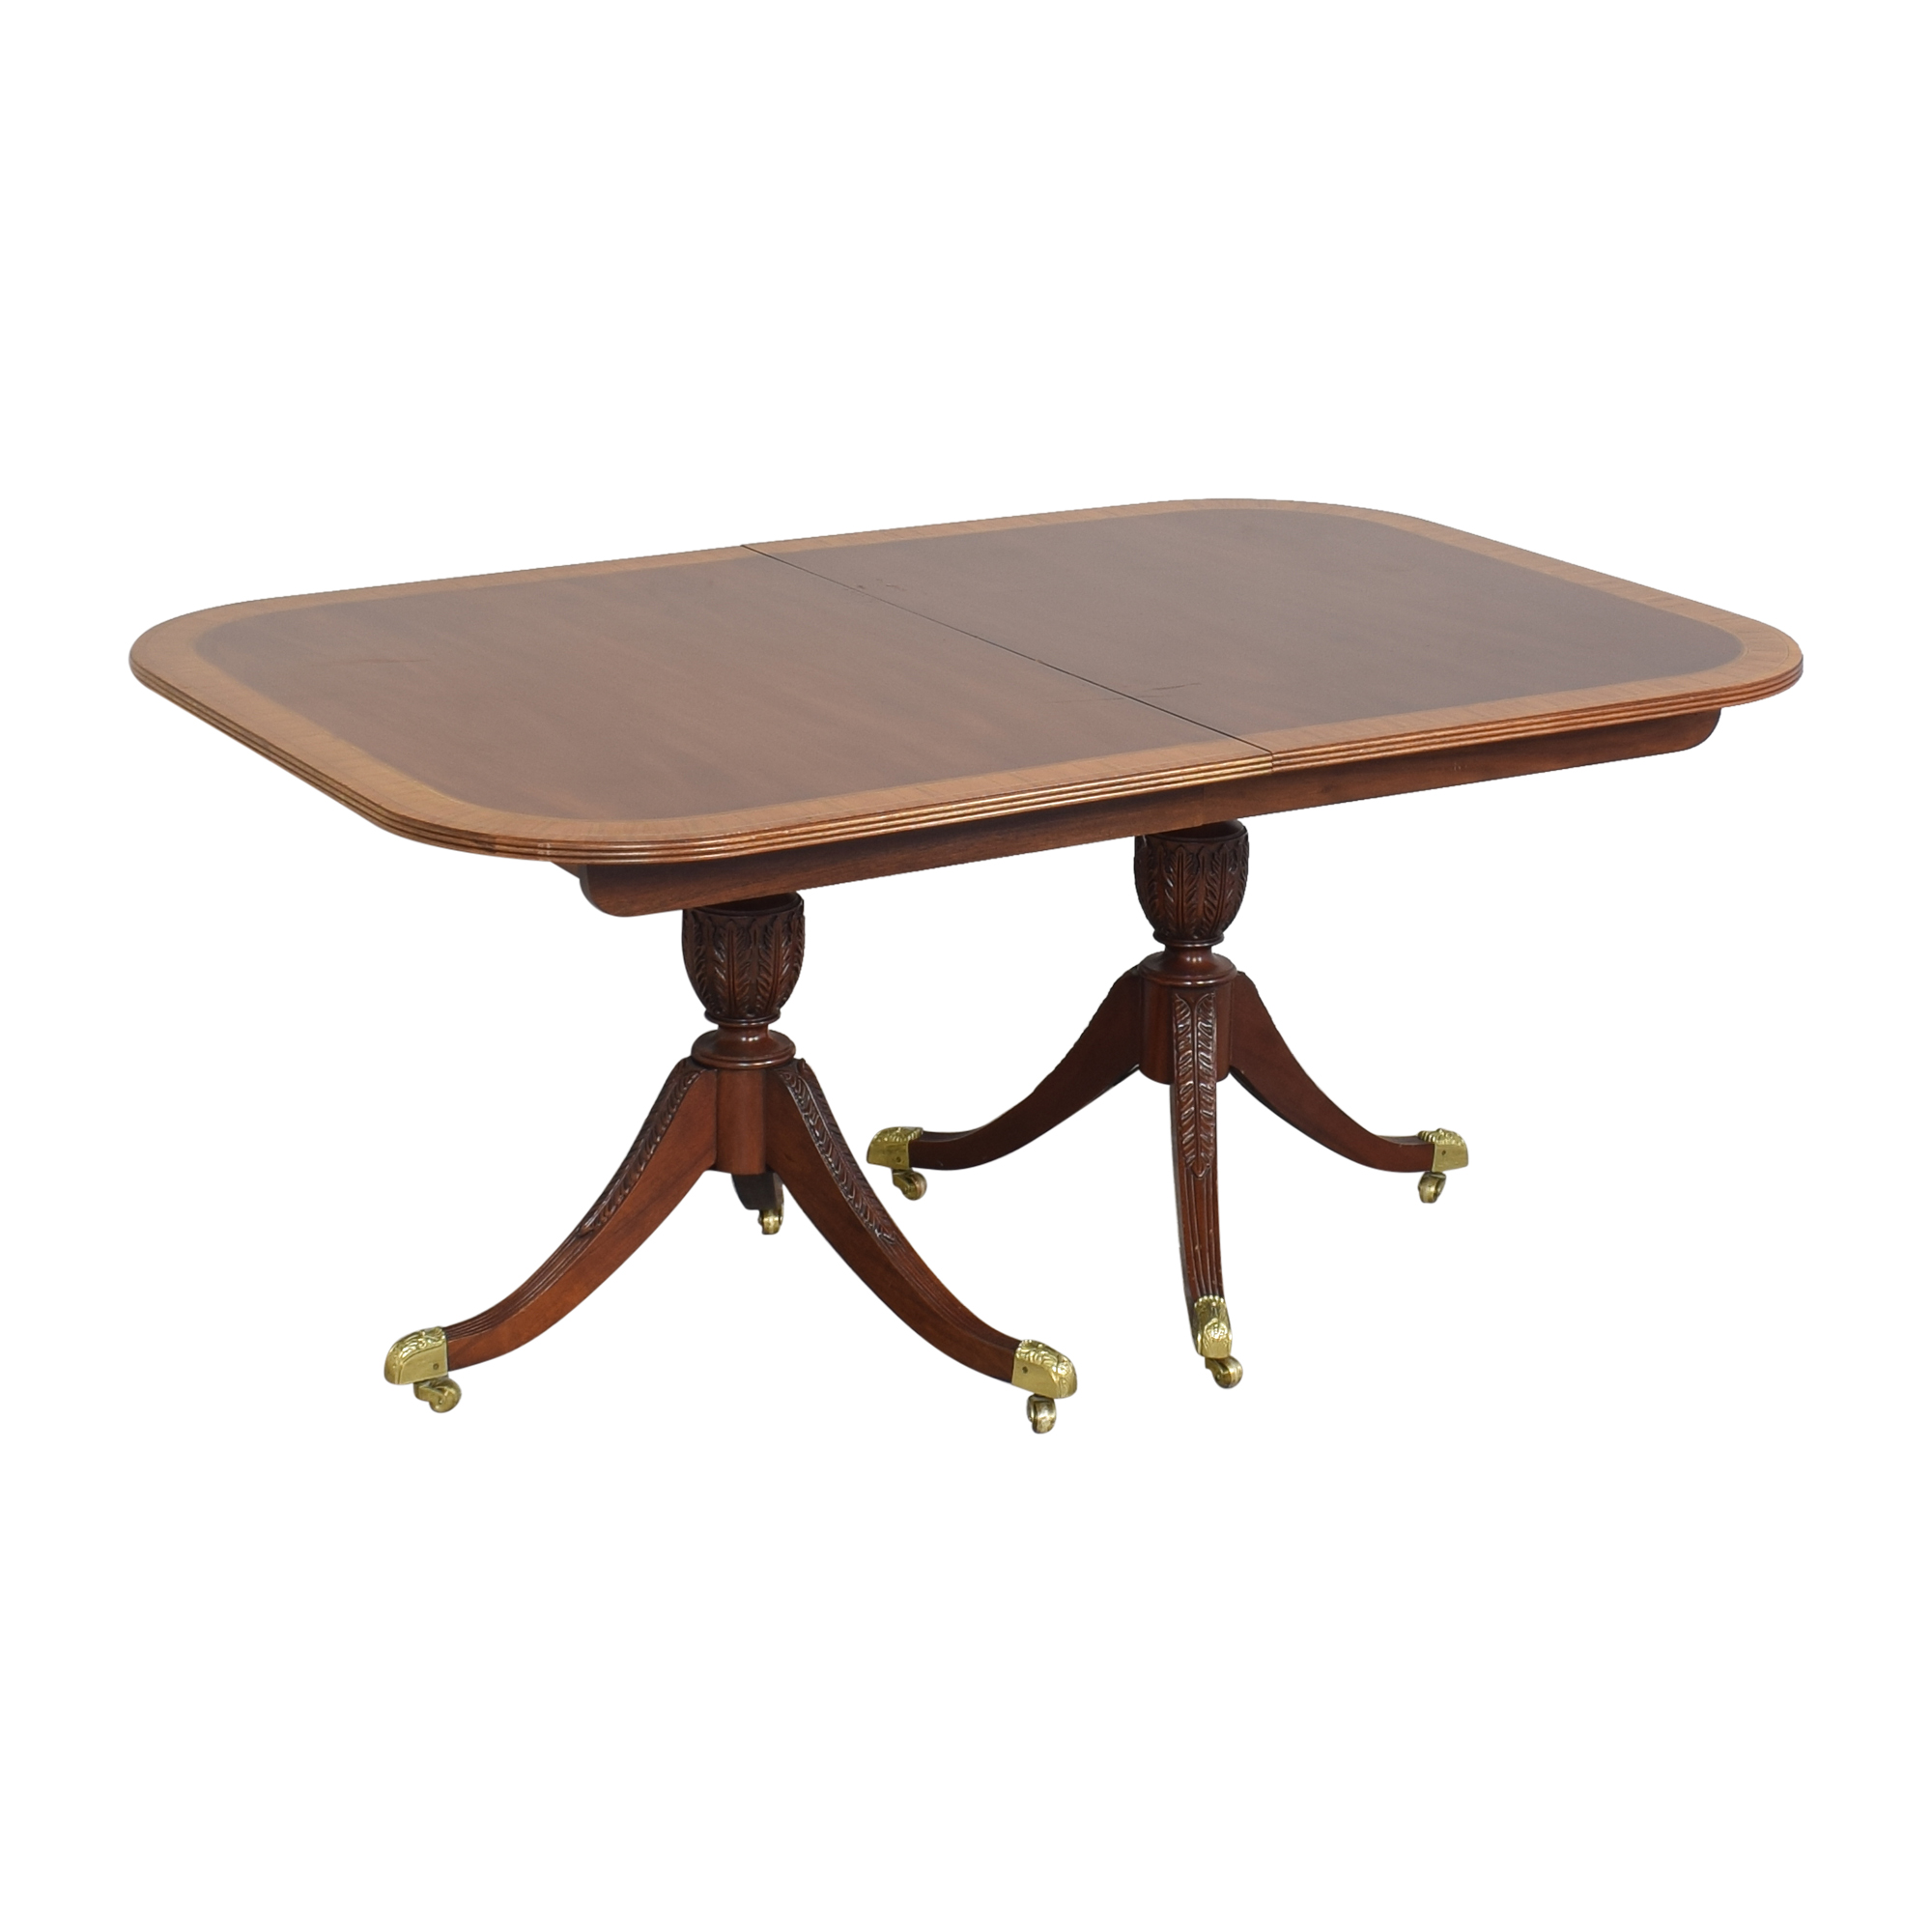 Councill Councill Craftsman Georgian Banded Extendable Dining Table ct